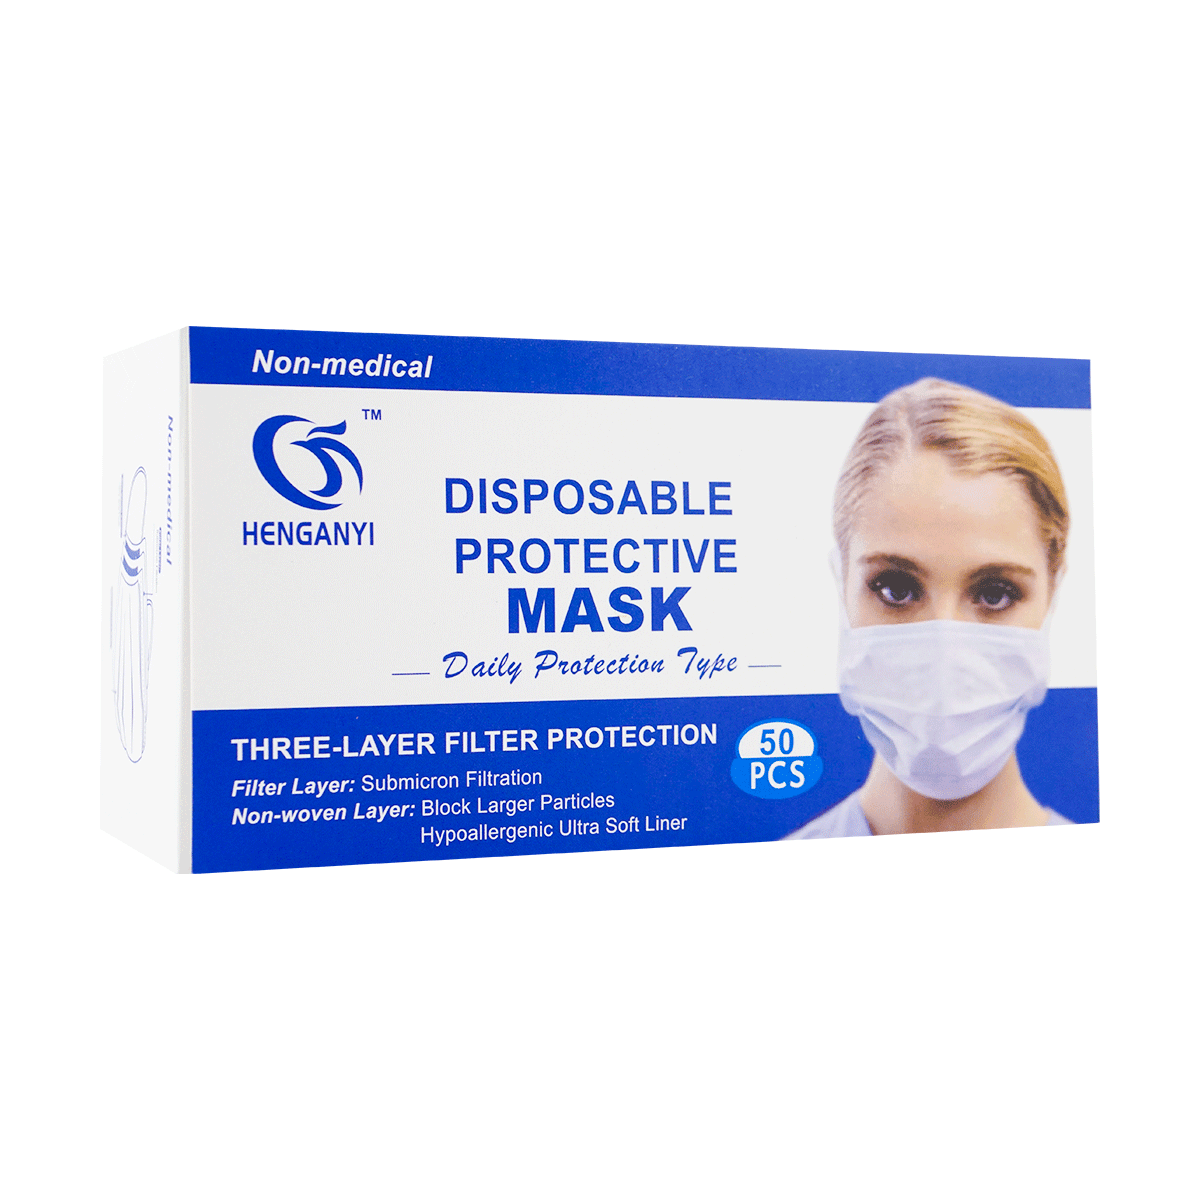 Yamibuy.com:Customer reviews:[Buy 1 Get 1 Free for Limited Time] HENGANYI 3-Layer Filter Protection Disposable Protective Mask 50pcs